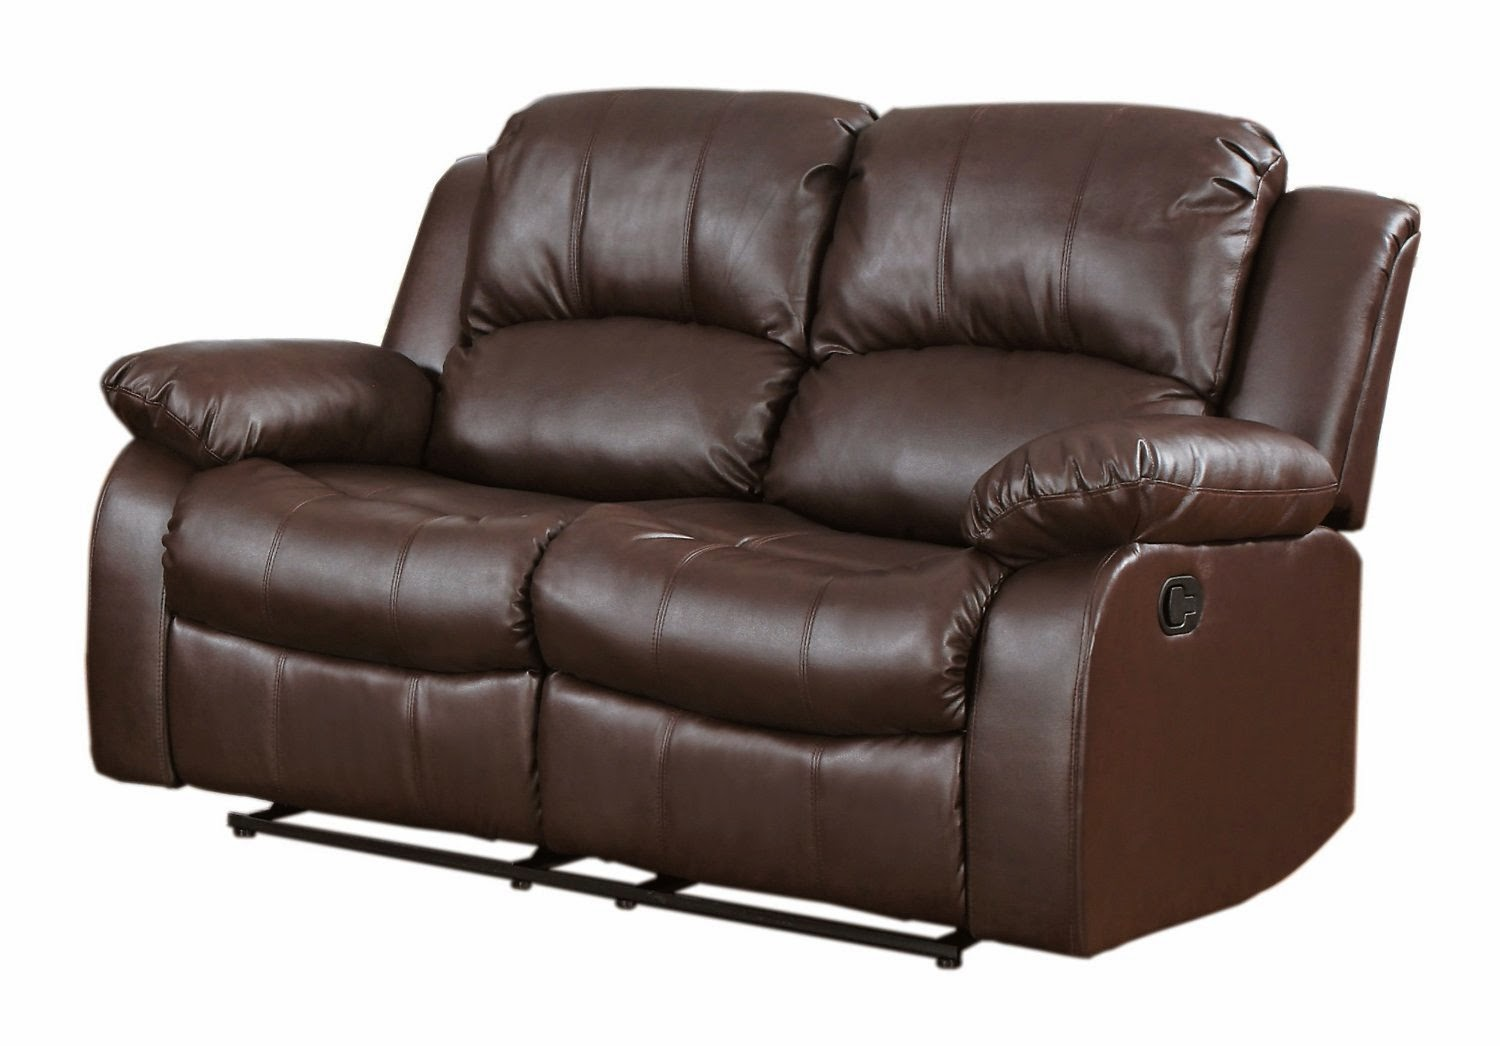 Where is the best place to buy recliner sofa 2 seater electric recliner leather sofa Leather loveseat recliners